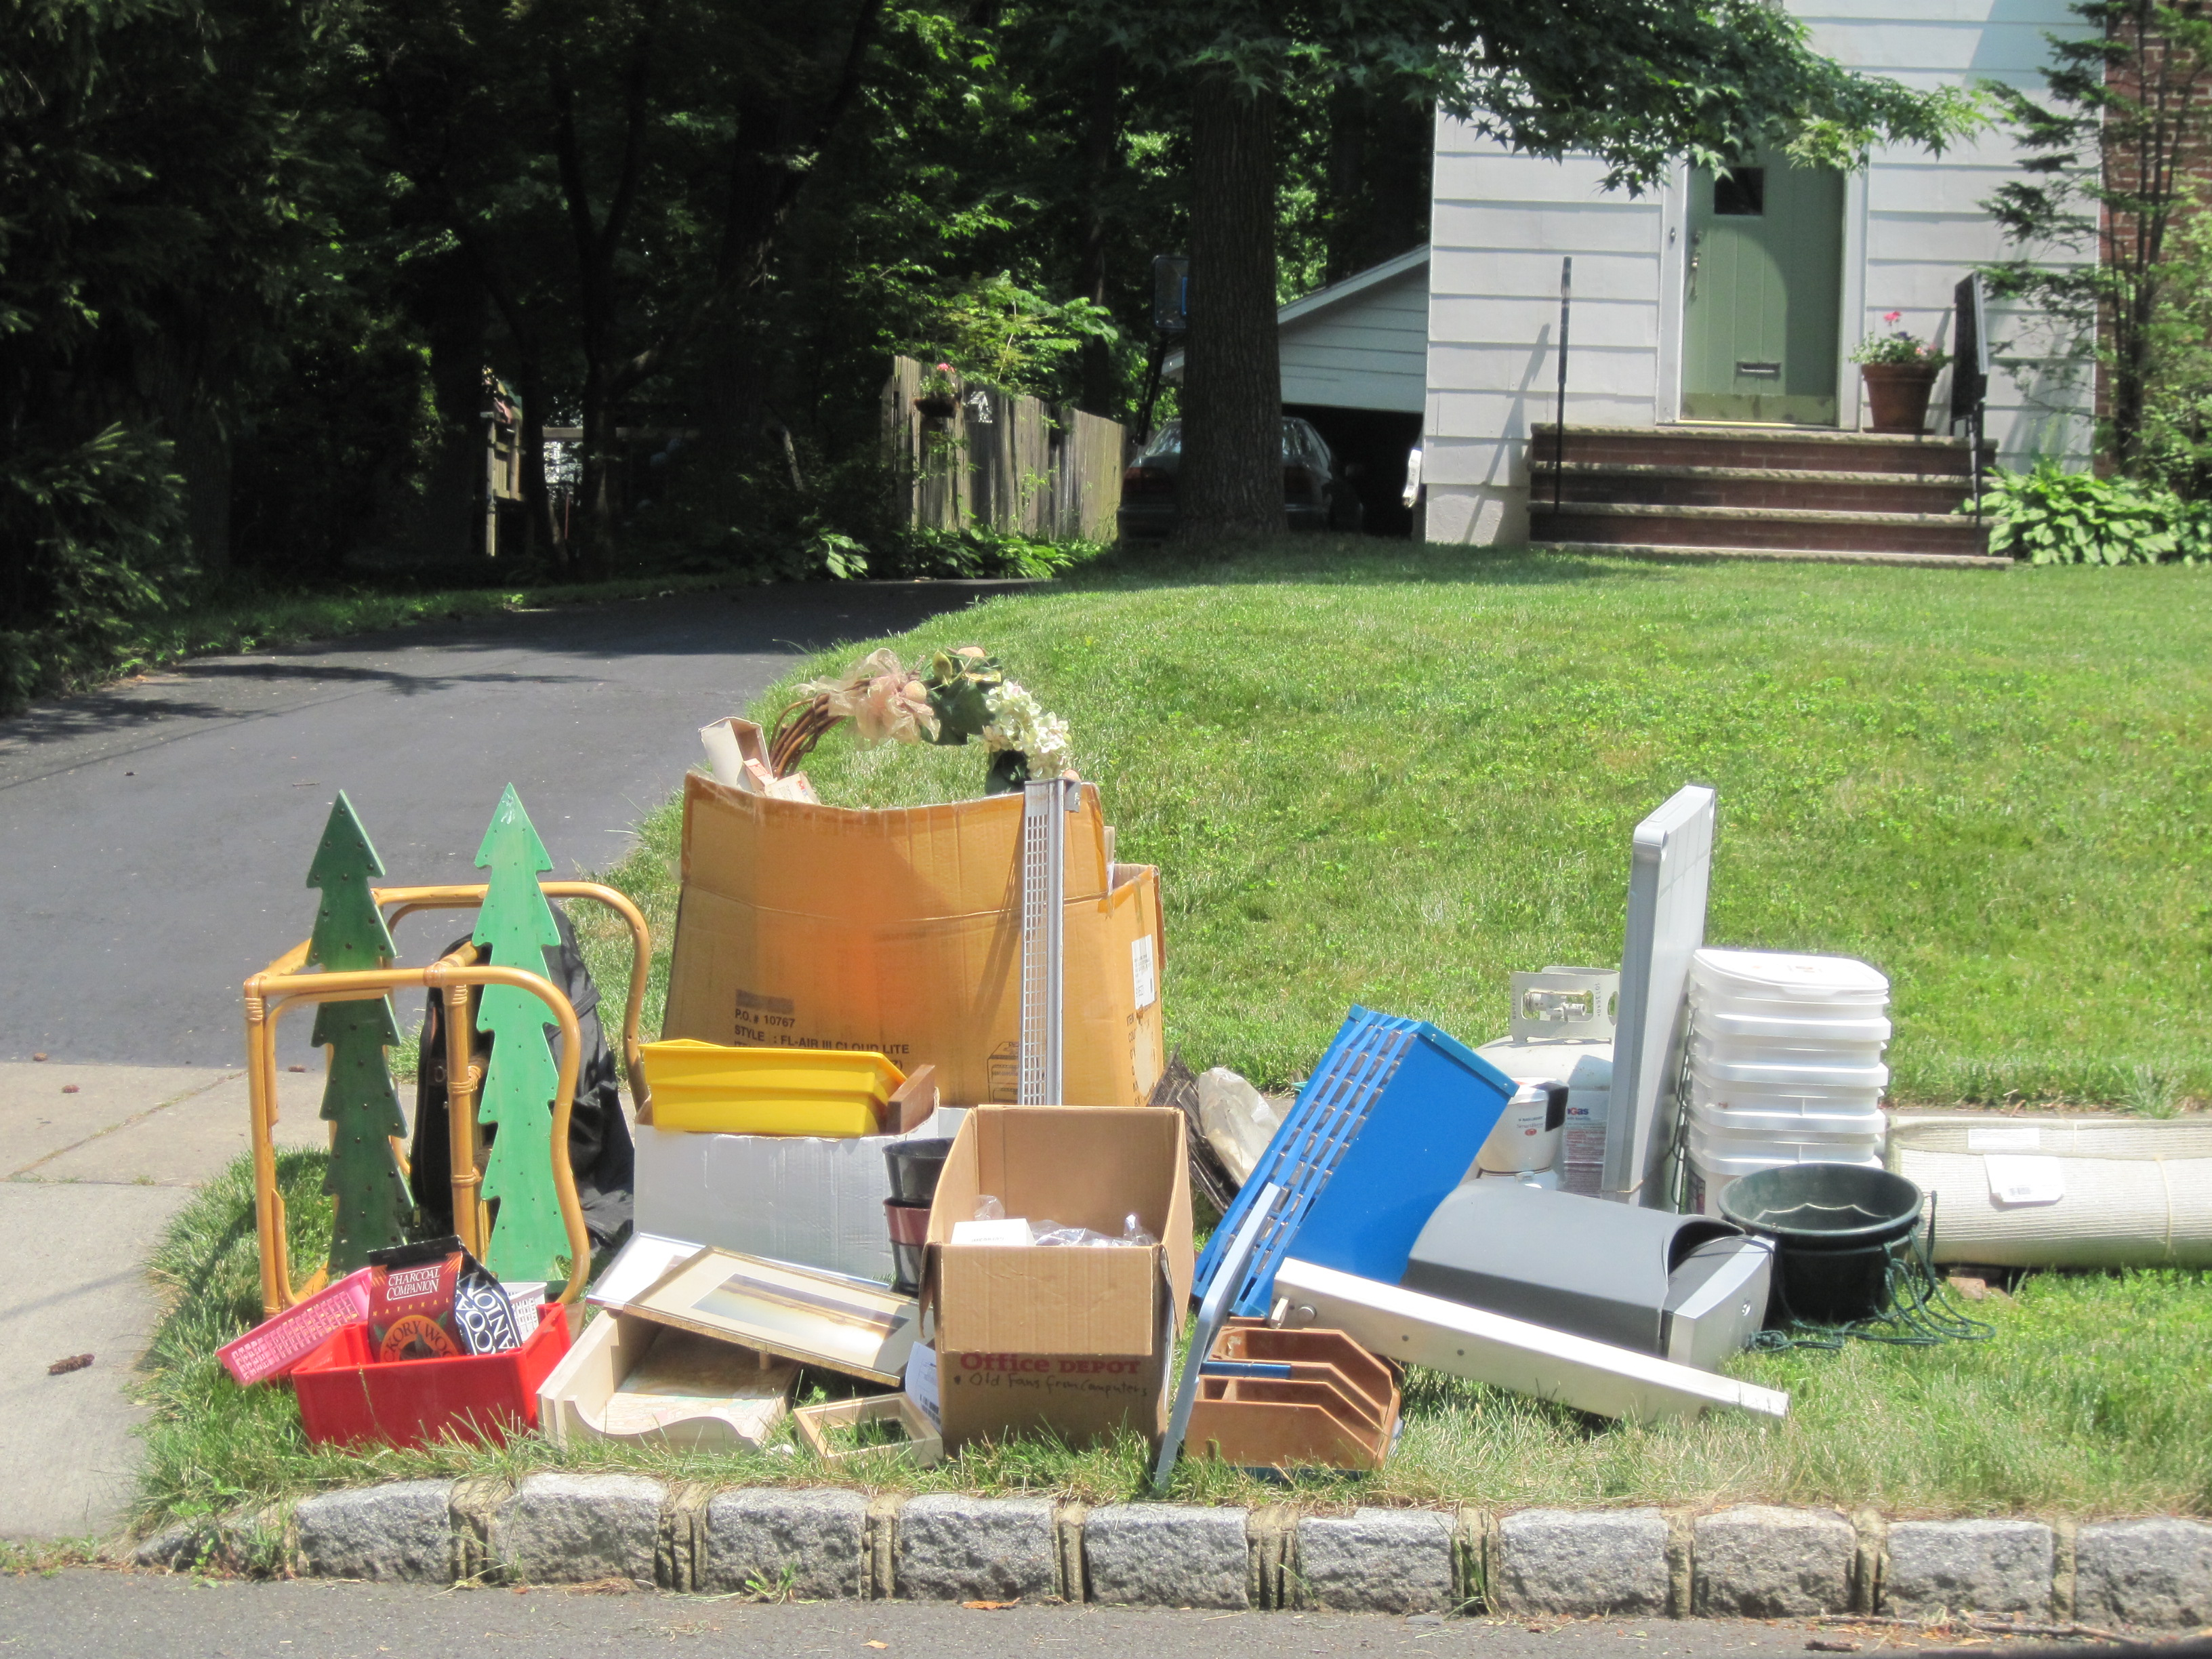 Garbage Pick Up : Bulk trash pick up letters from new jersey